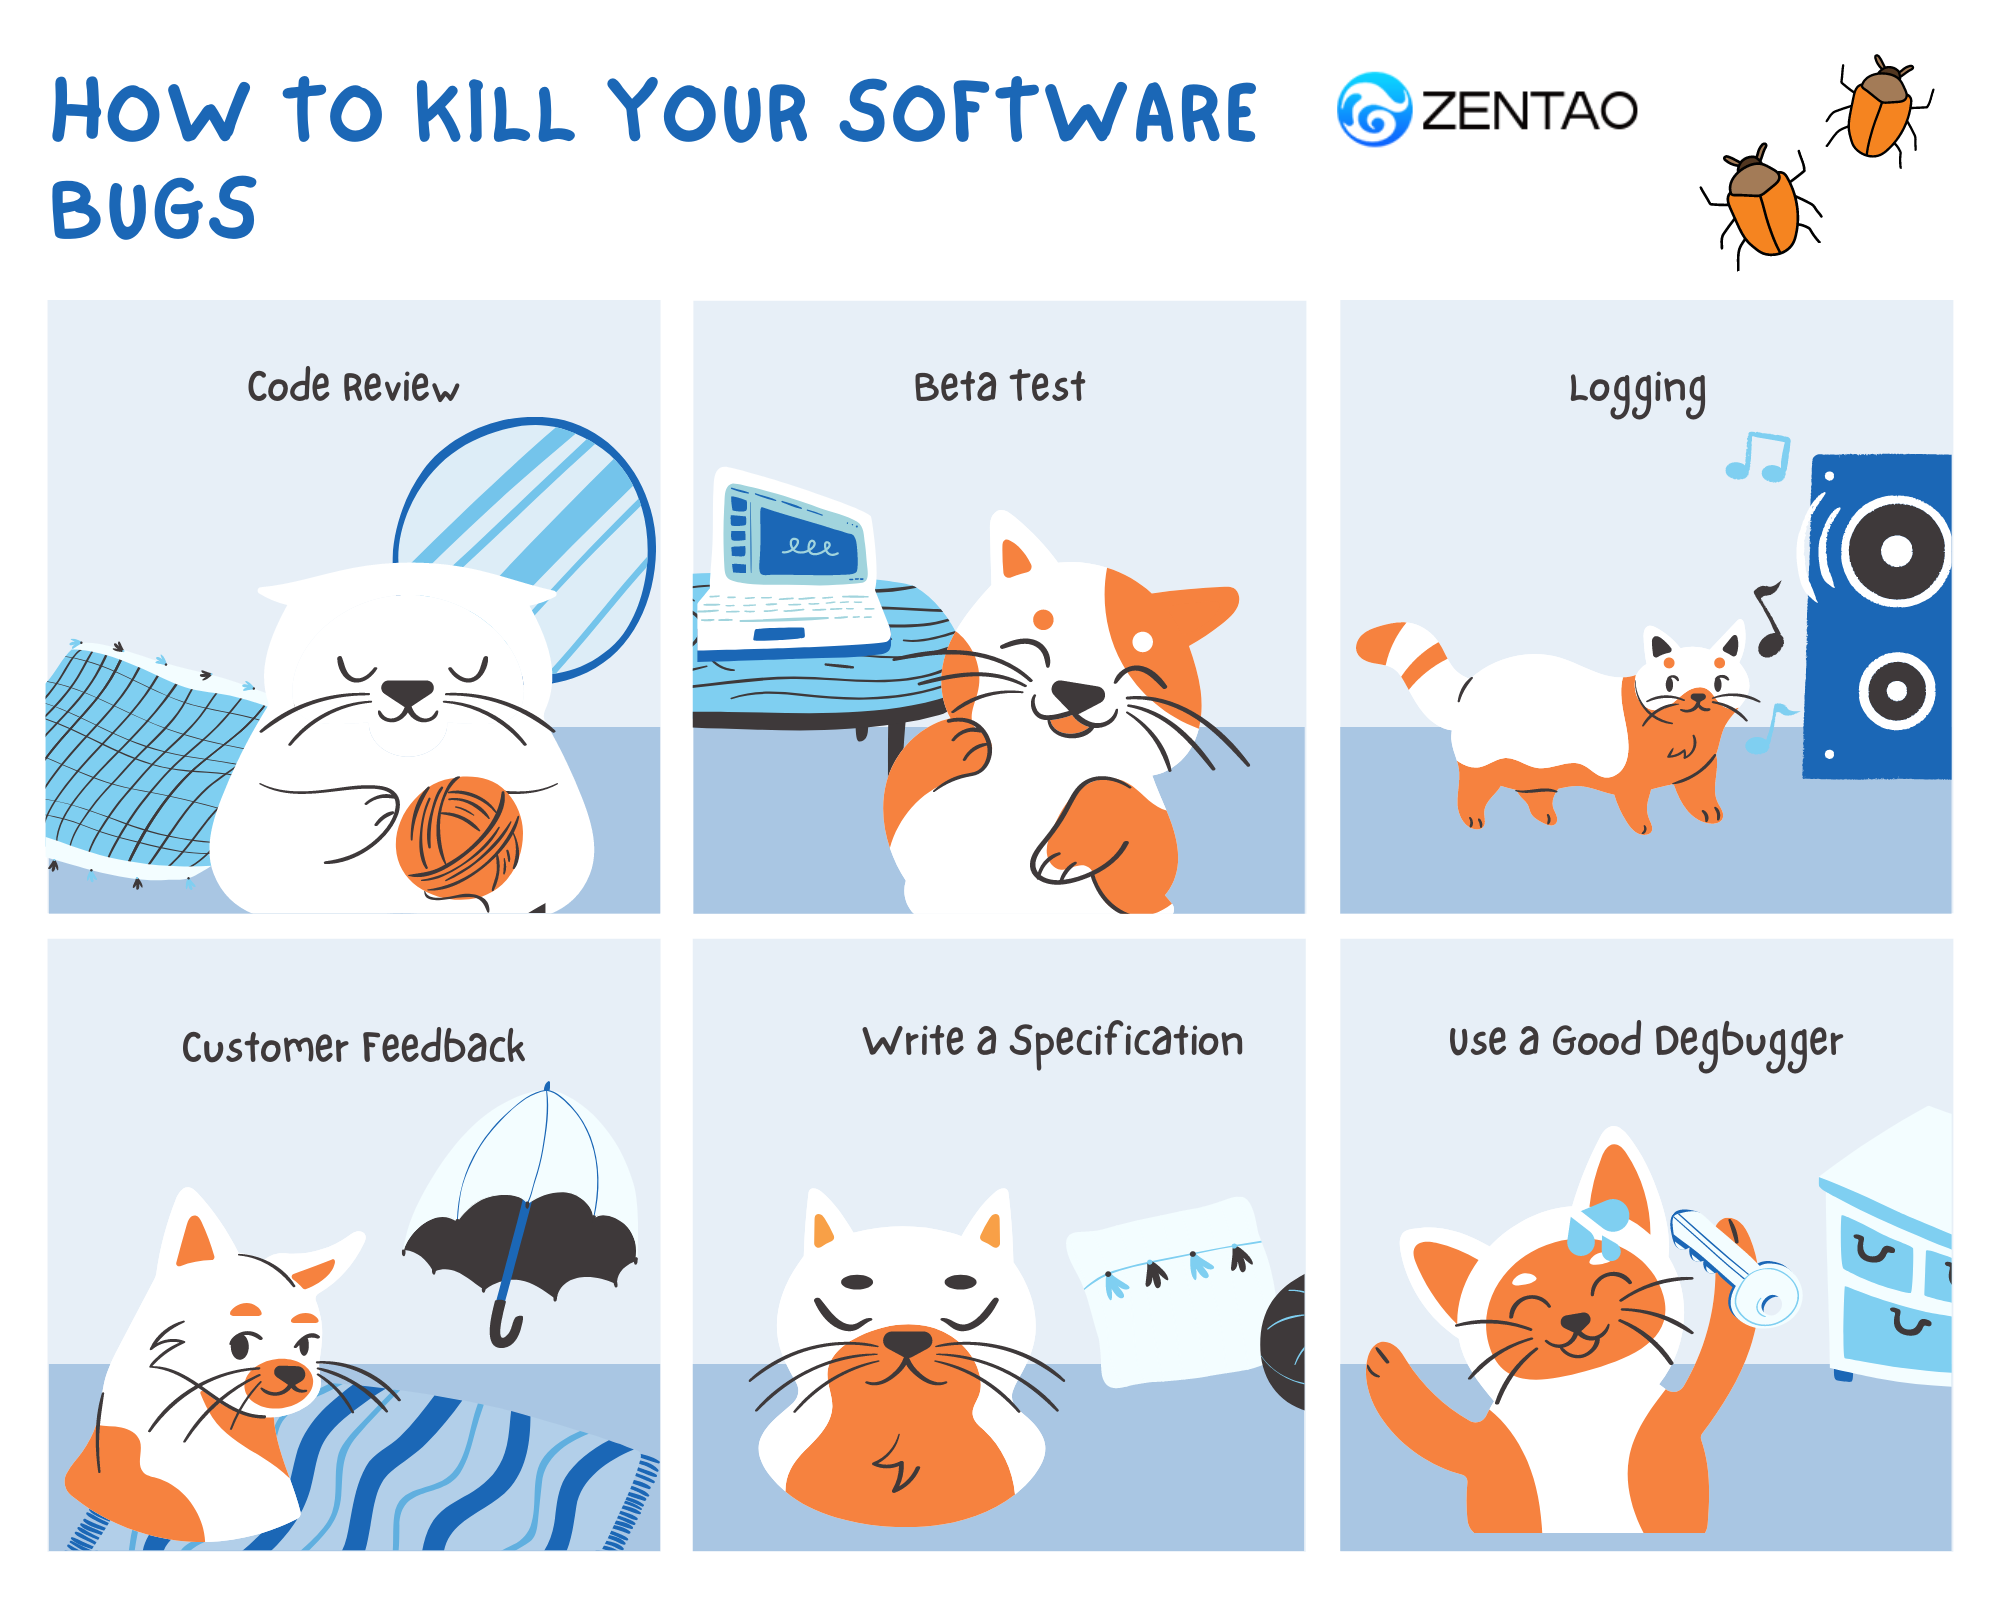 https://www.zentao.pm/blog/how-to-kill-your-software-bugs-949.html